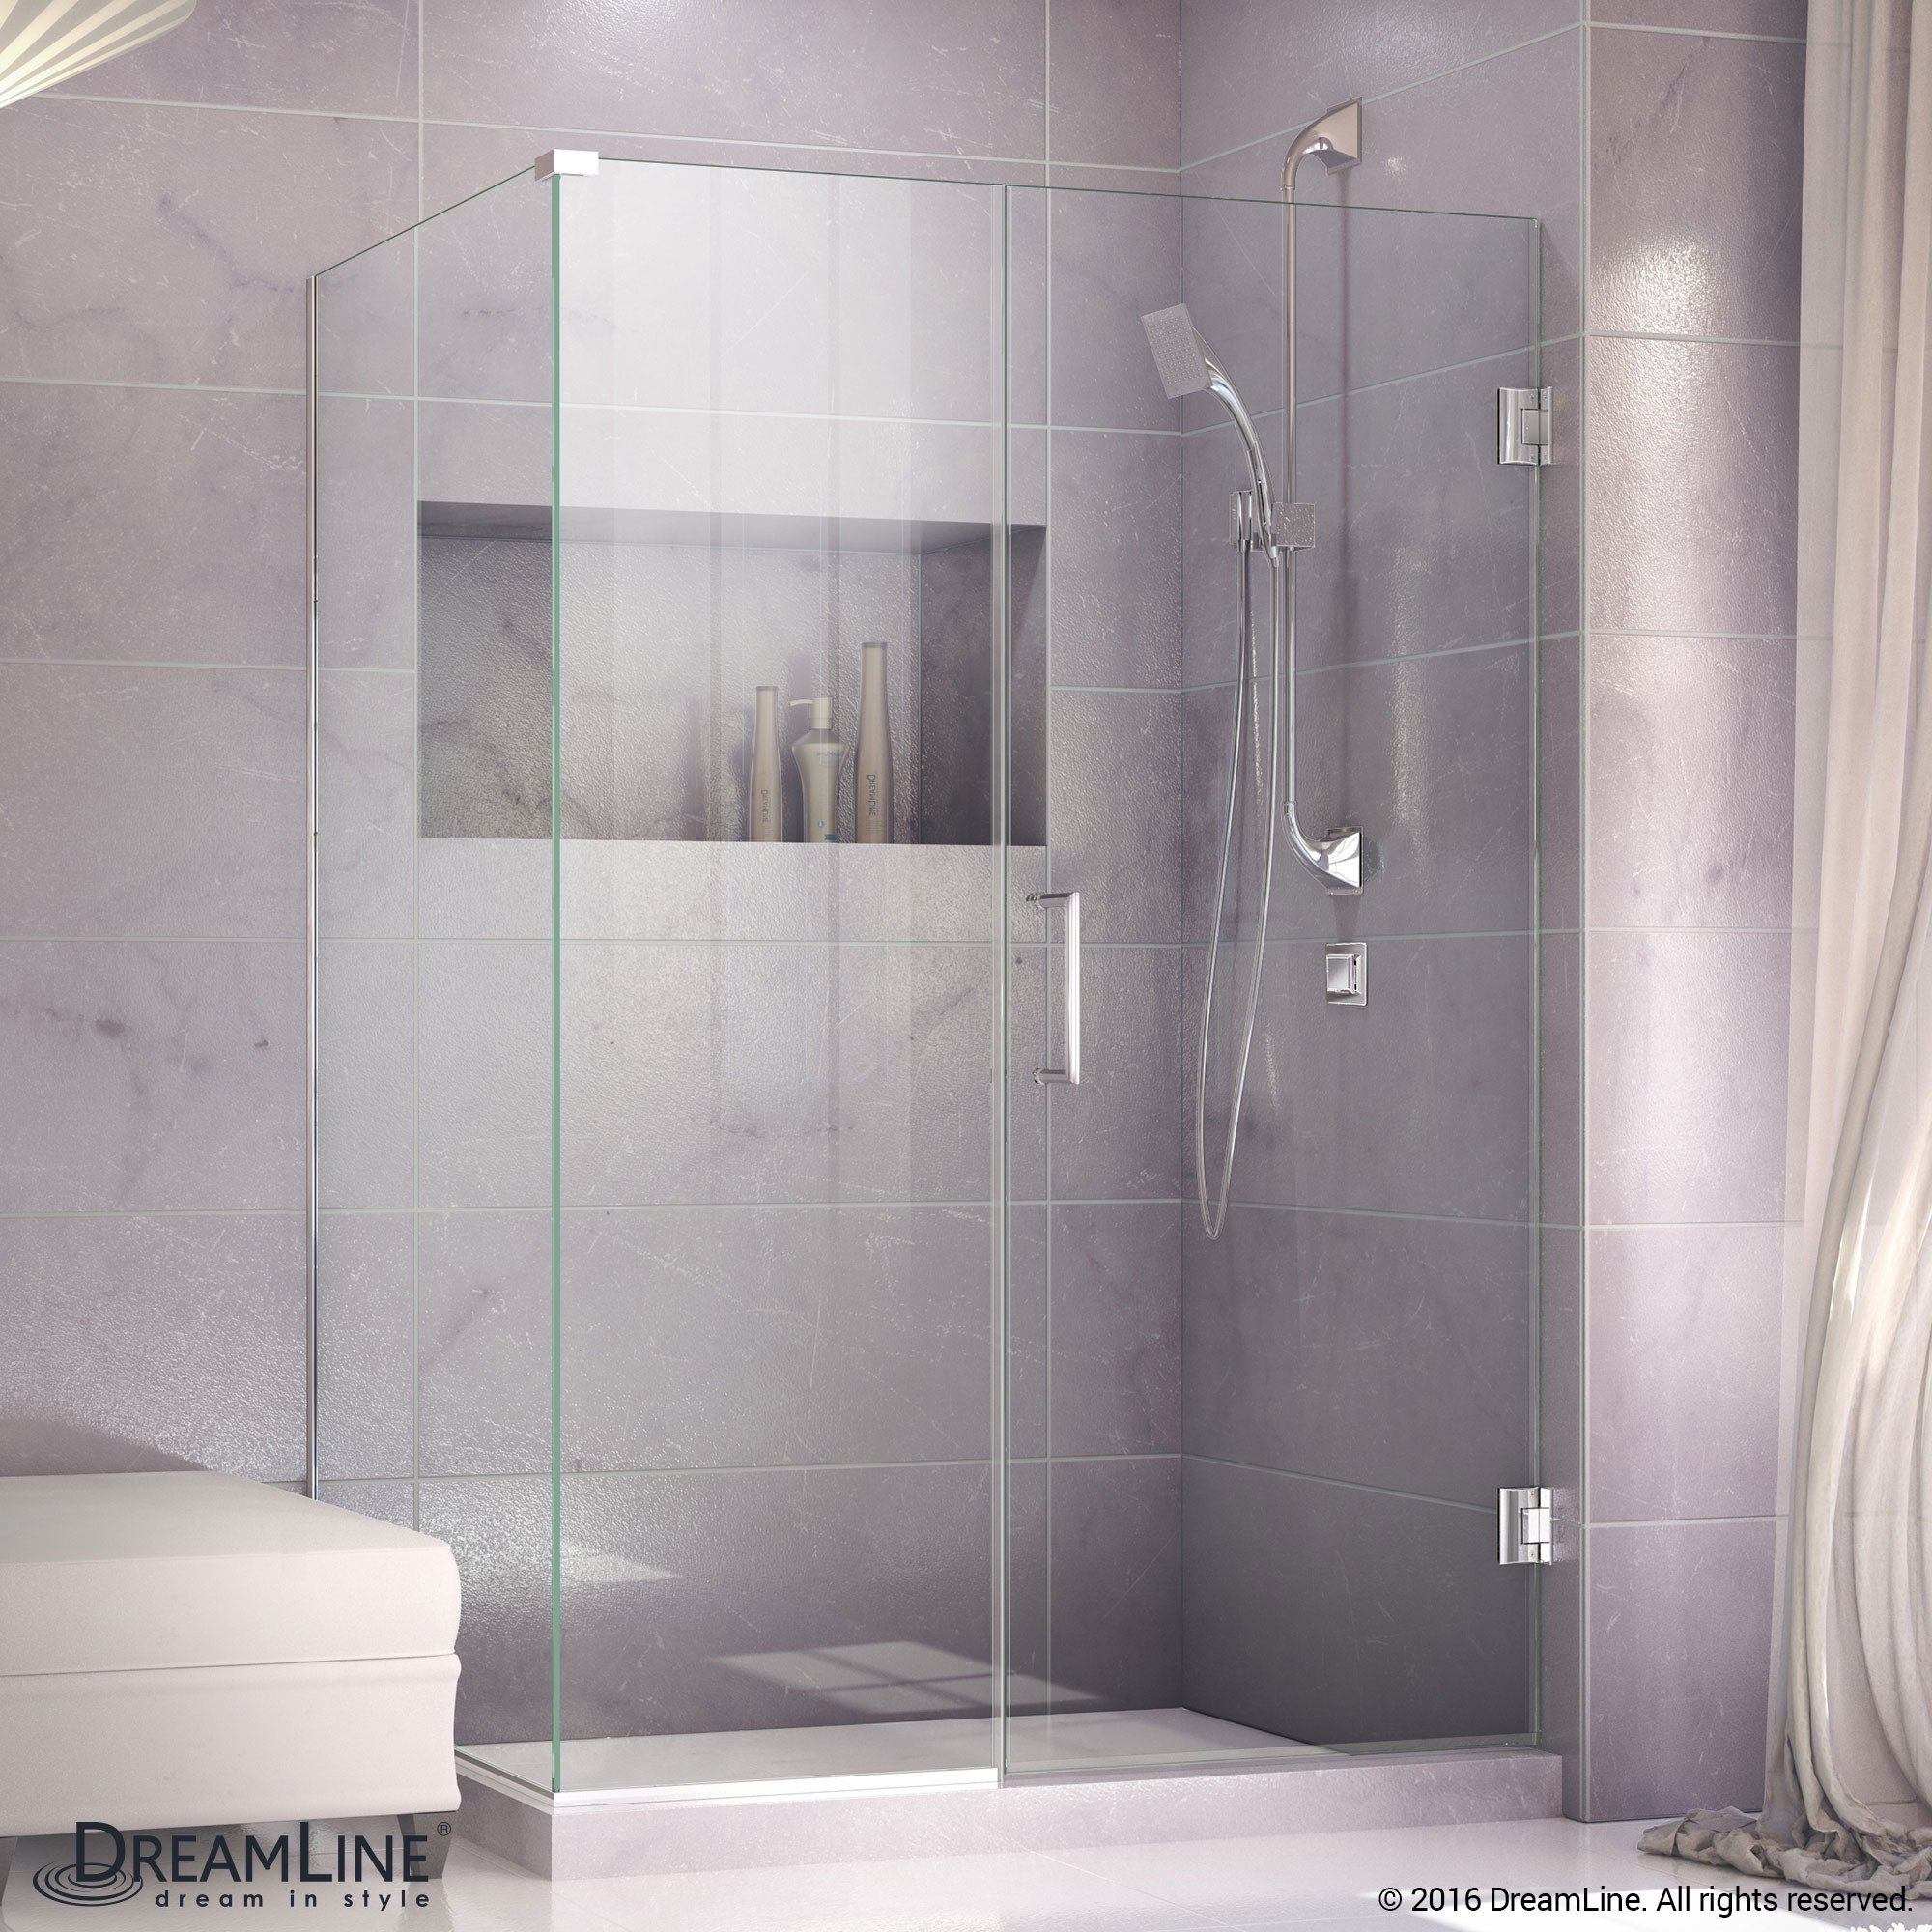 DreamLine SHEN-24440300-01 Unidoor Plus Hinged Shower Enclosure In Chrome Finish Hardware